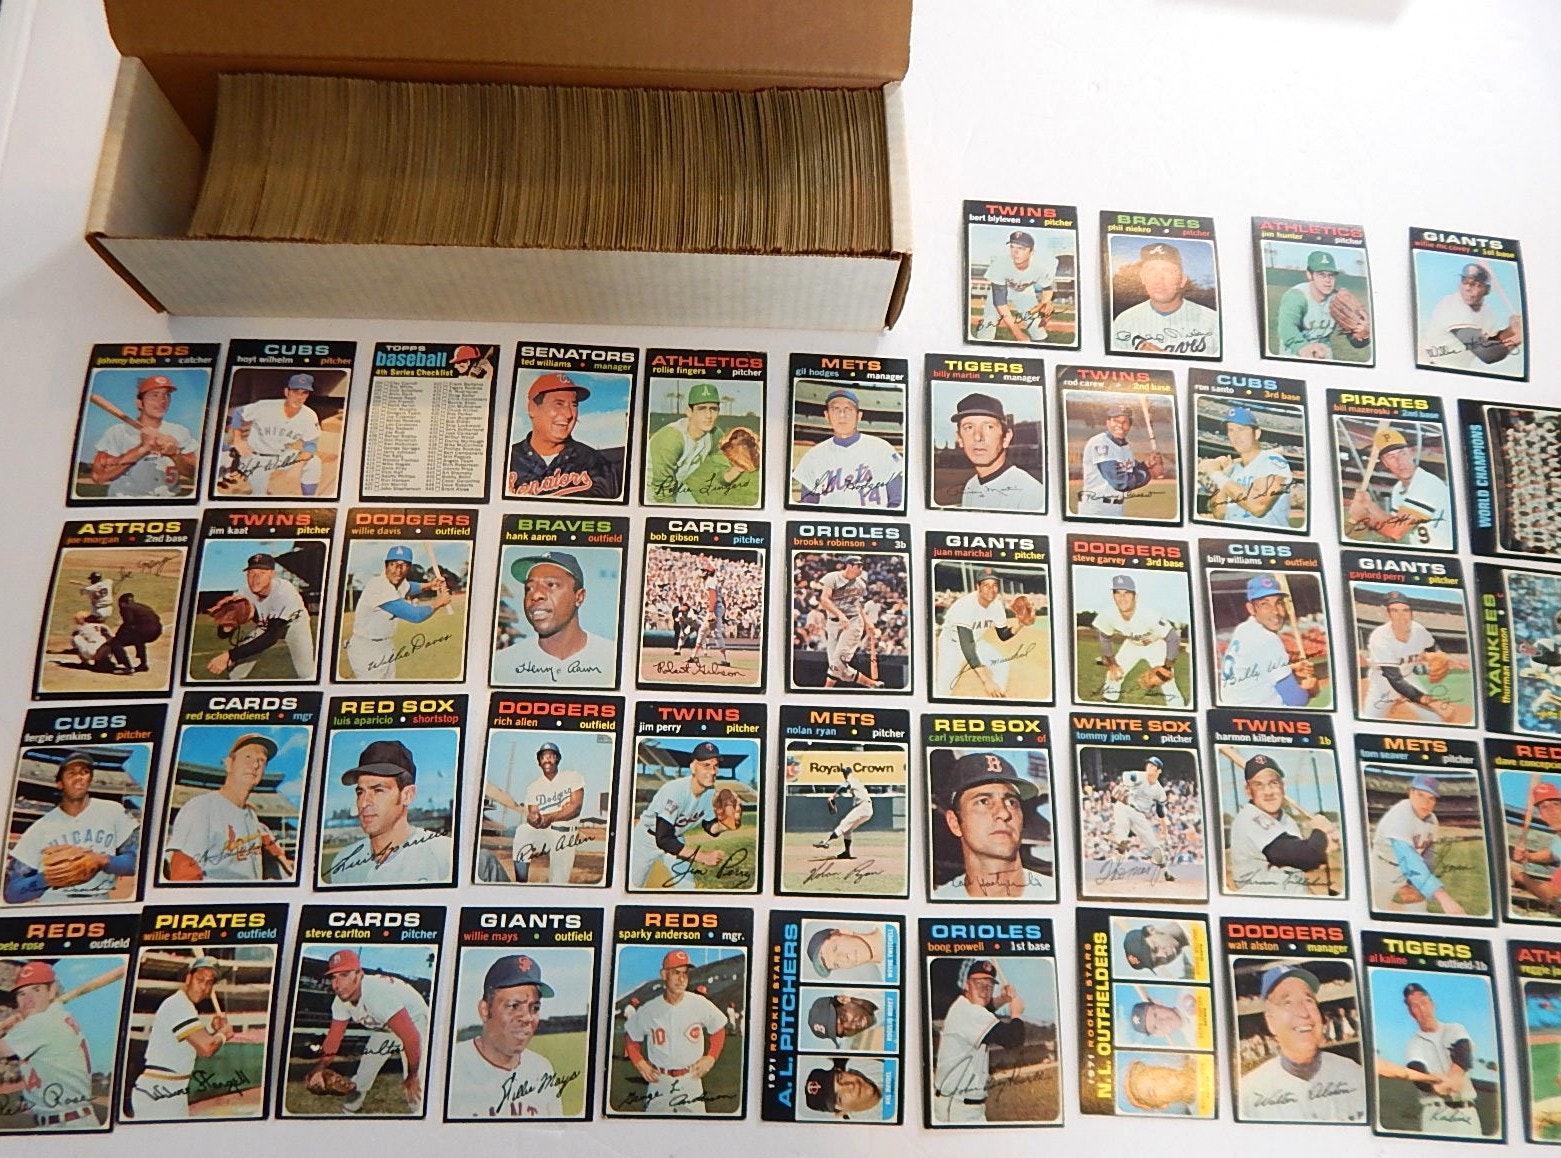 1971 Topps Baseball Card Partial Set with HOF and Stars